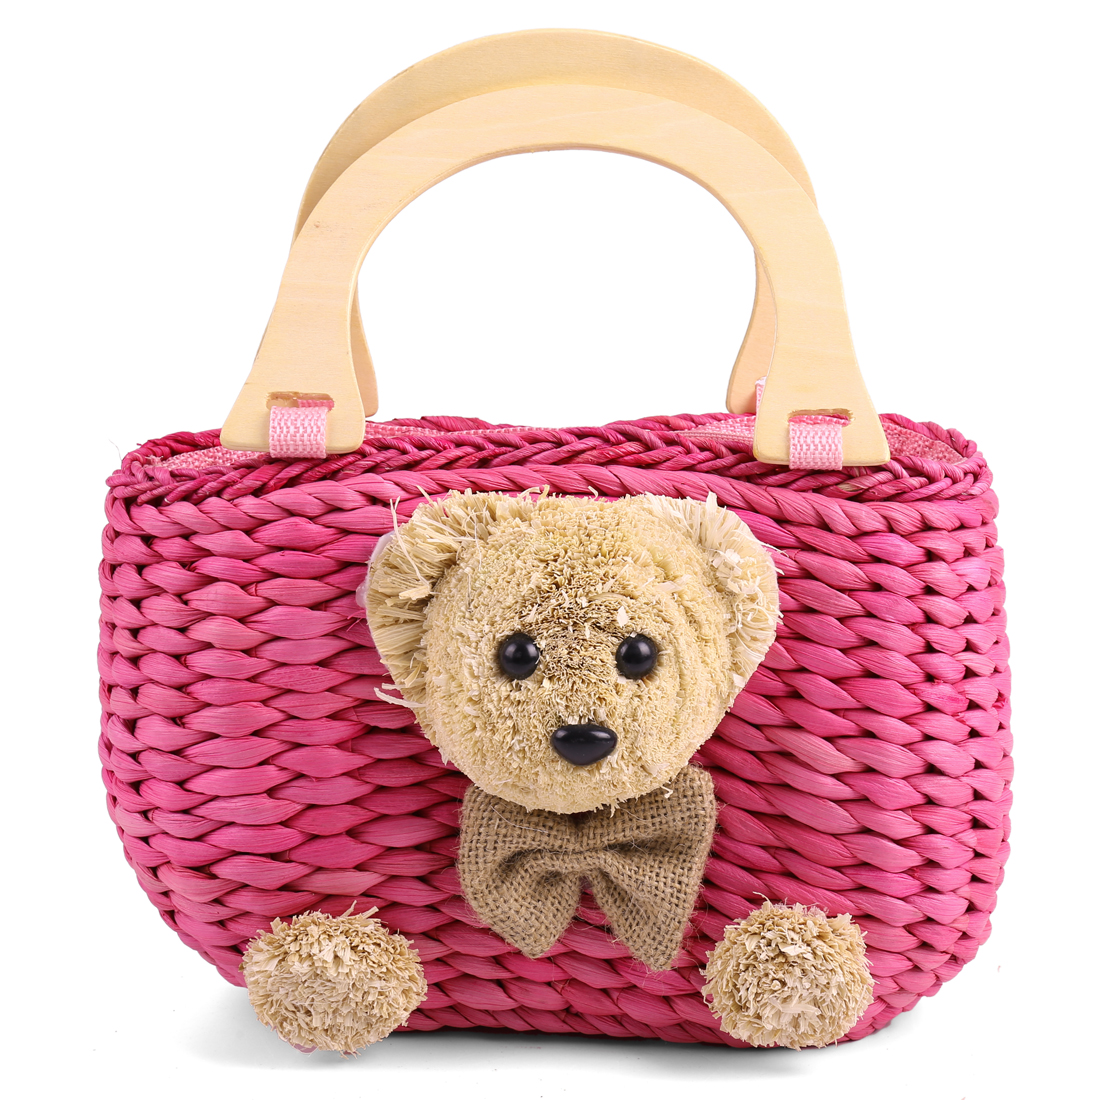 Girls Cute 3D Bear Decor Zipper Clousre Design Fuchsia Straw Woven Handbag